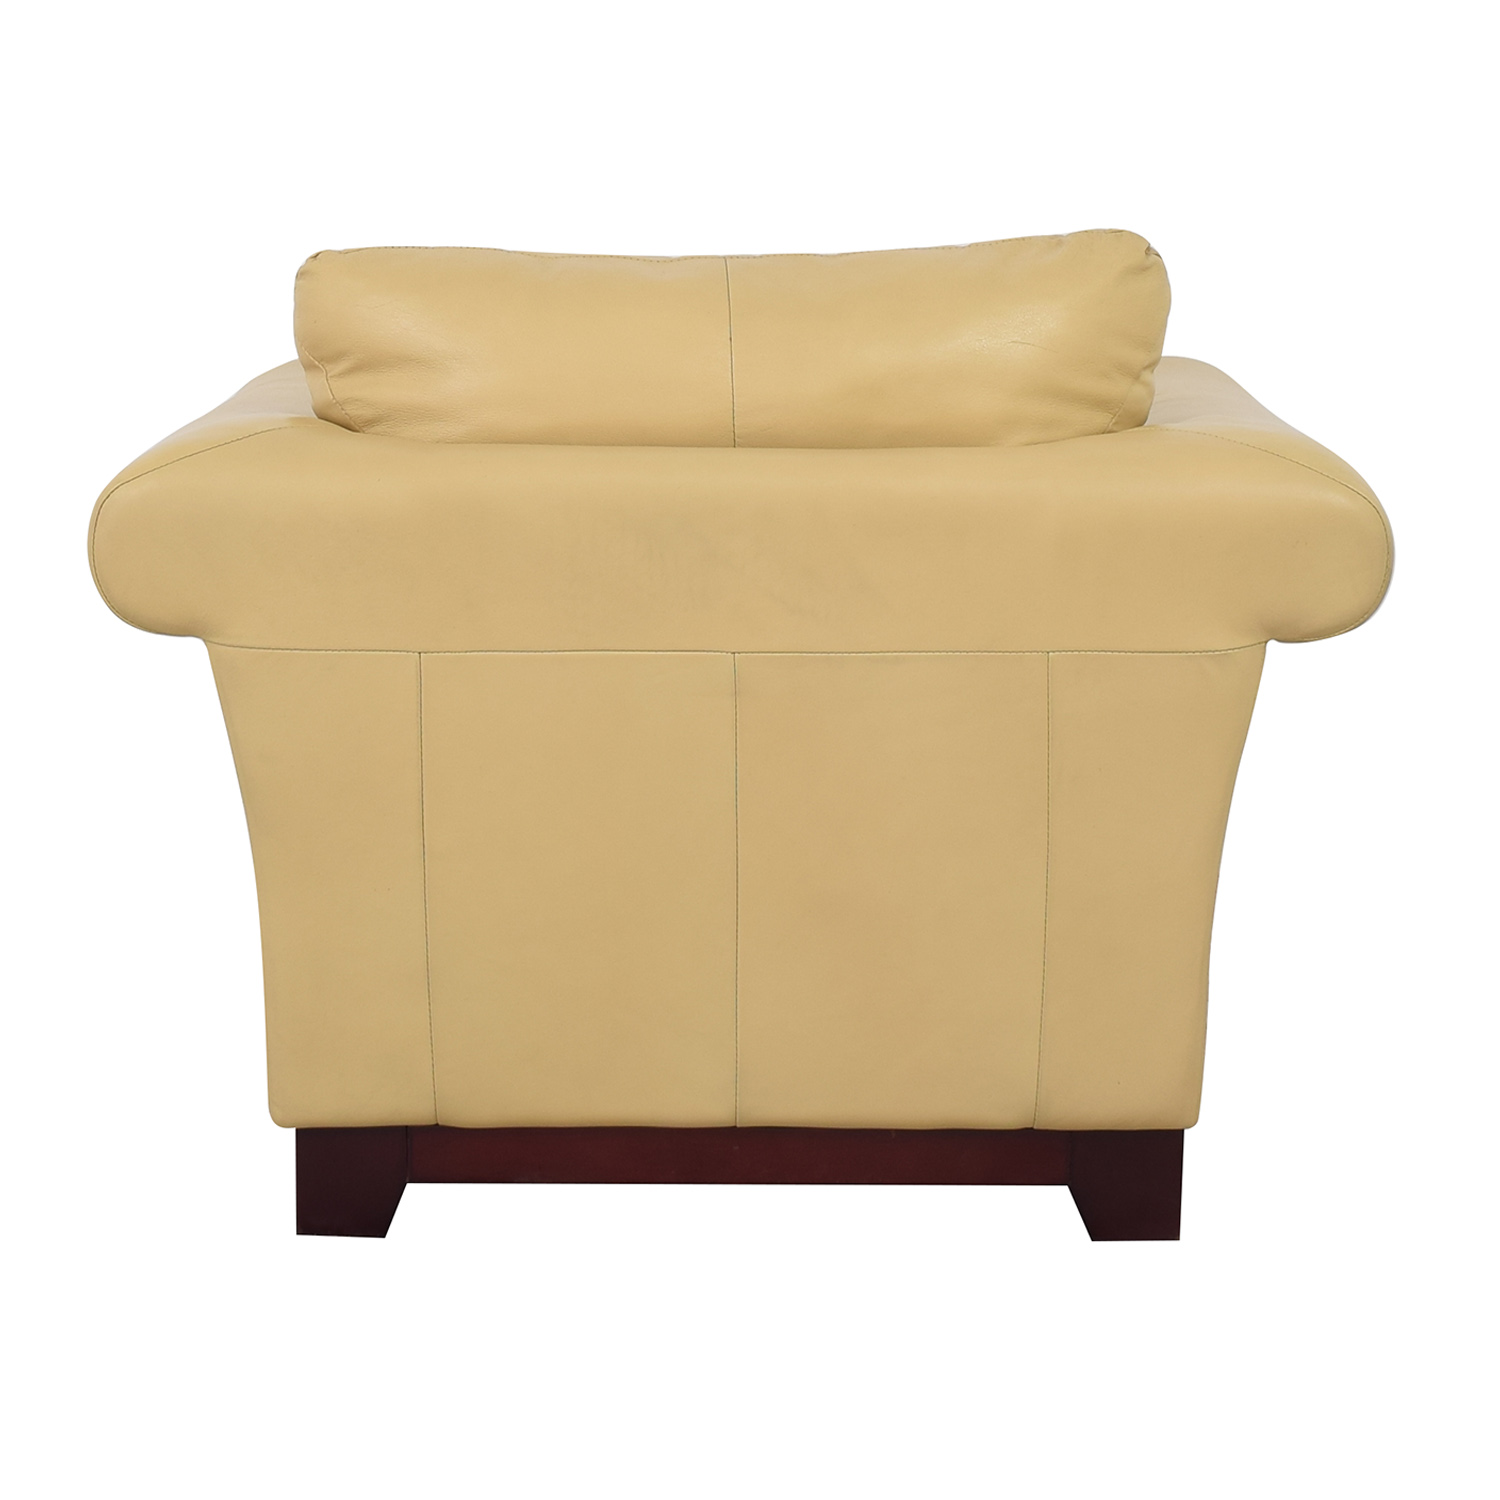 shop Castro Convertibles Castro Convertibles Yellow Leather Armchair online